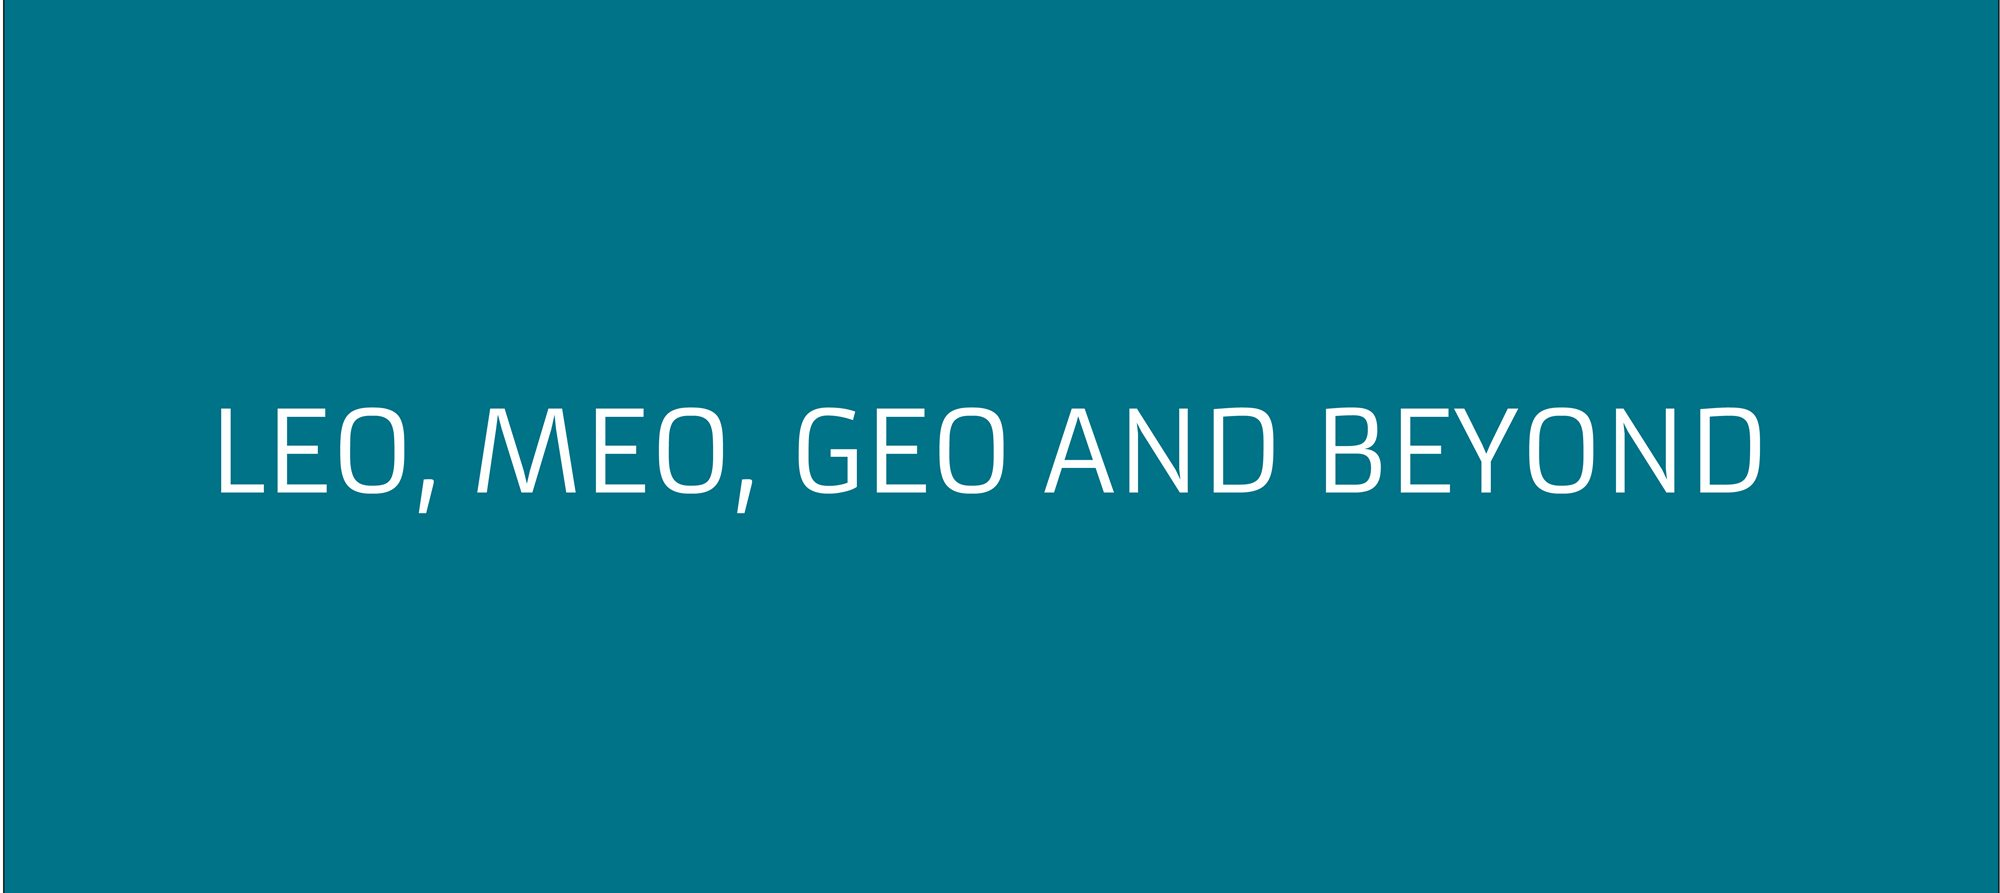 LEO, MEO, GEO and beyond